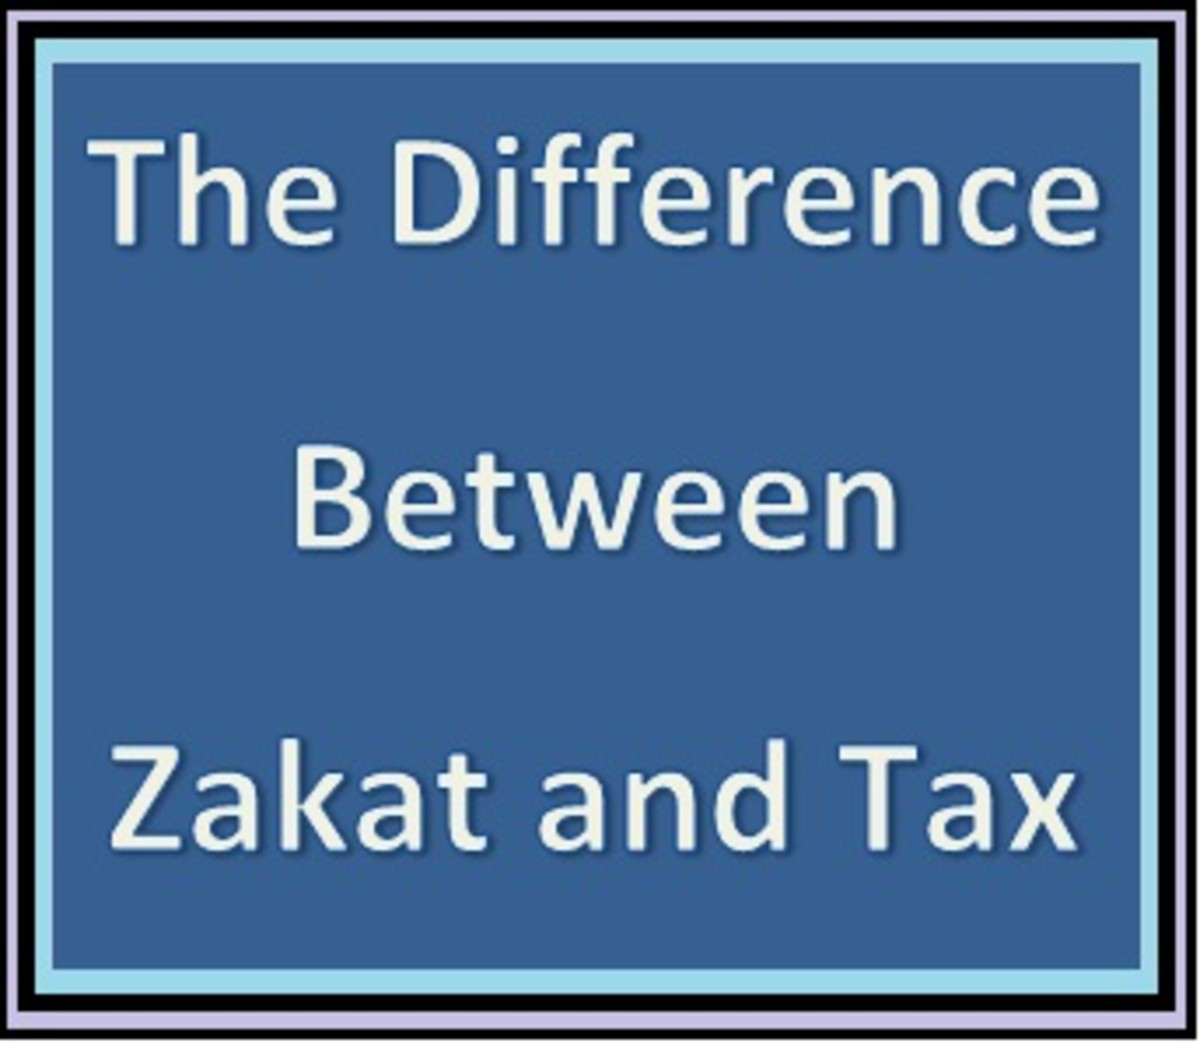 The difference between Zakat and Tax